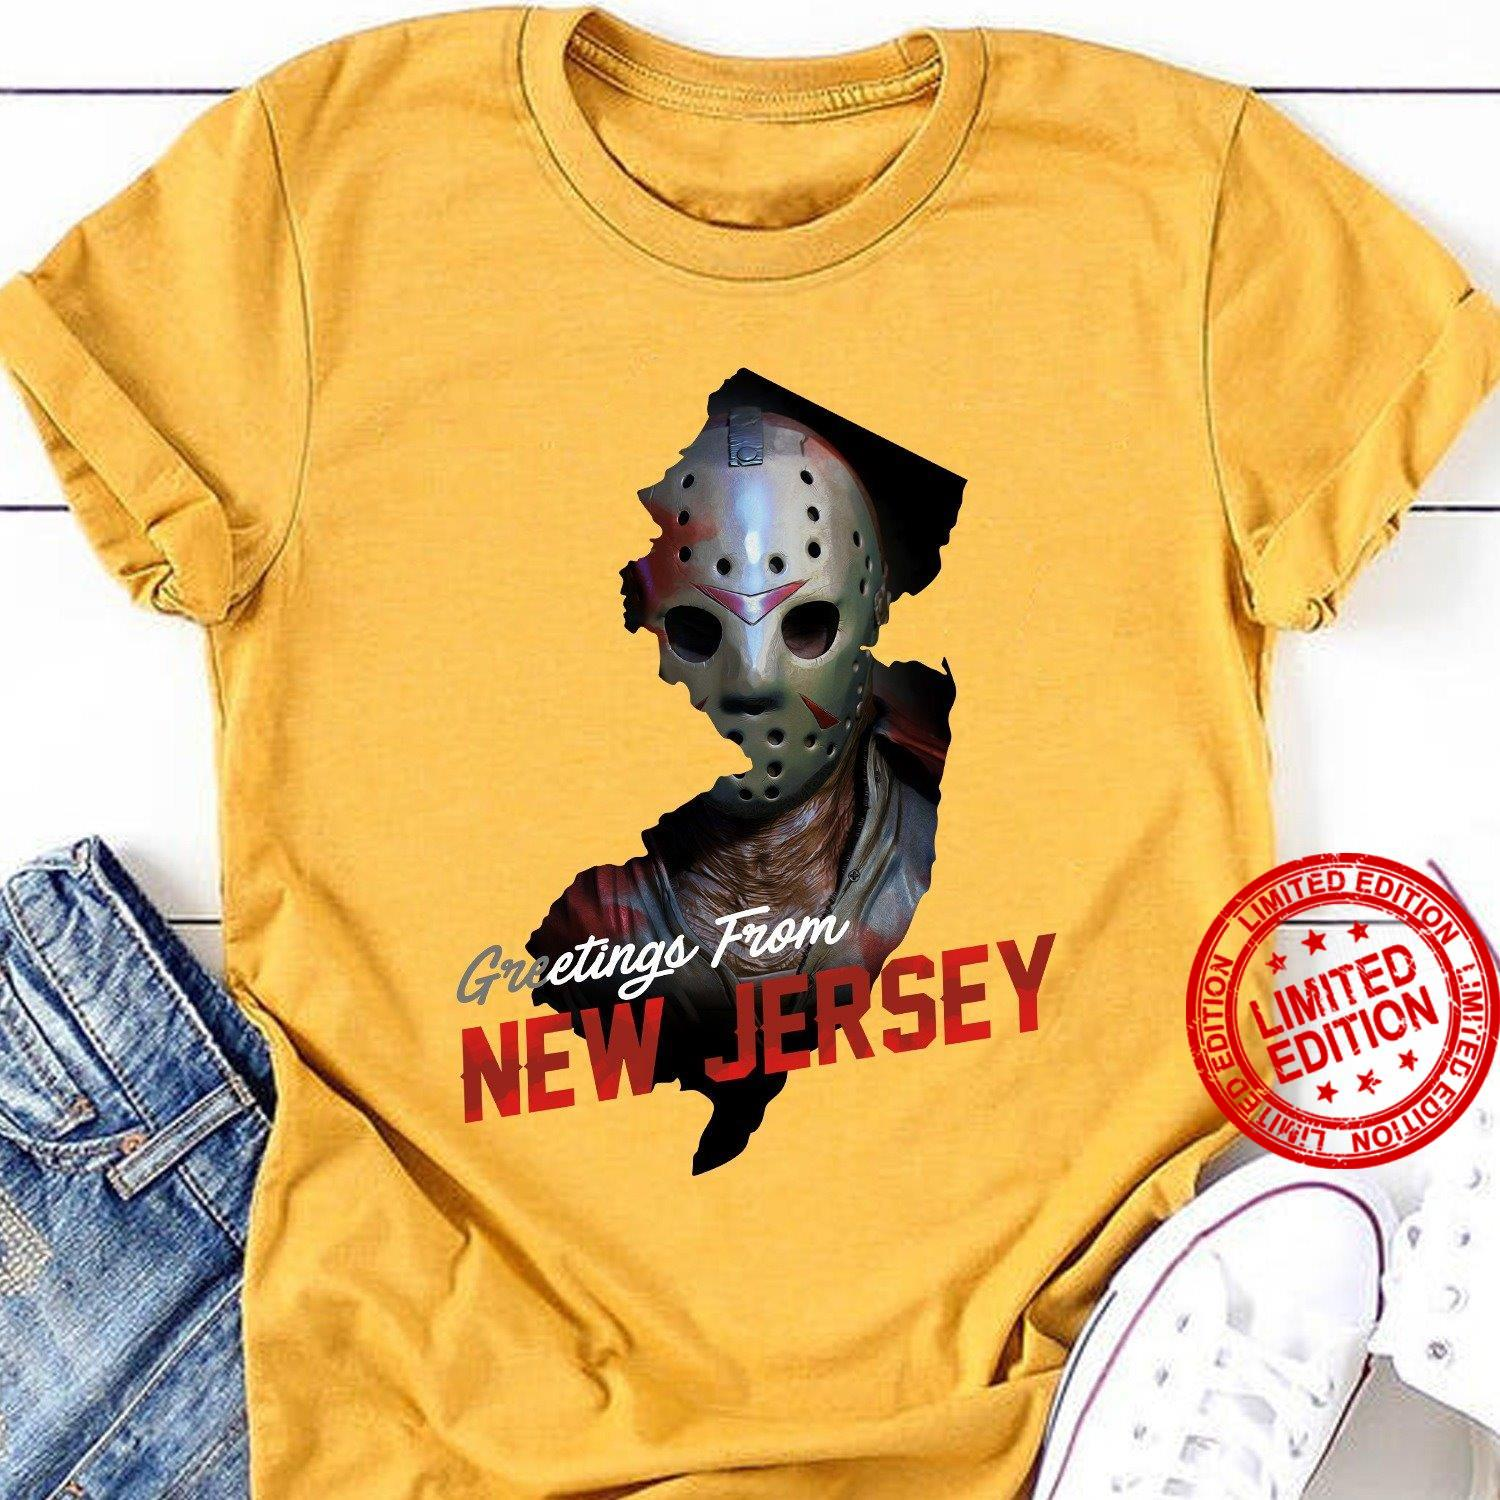 Greetings From New Jersey Shirt